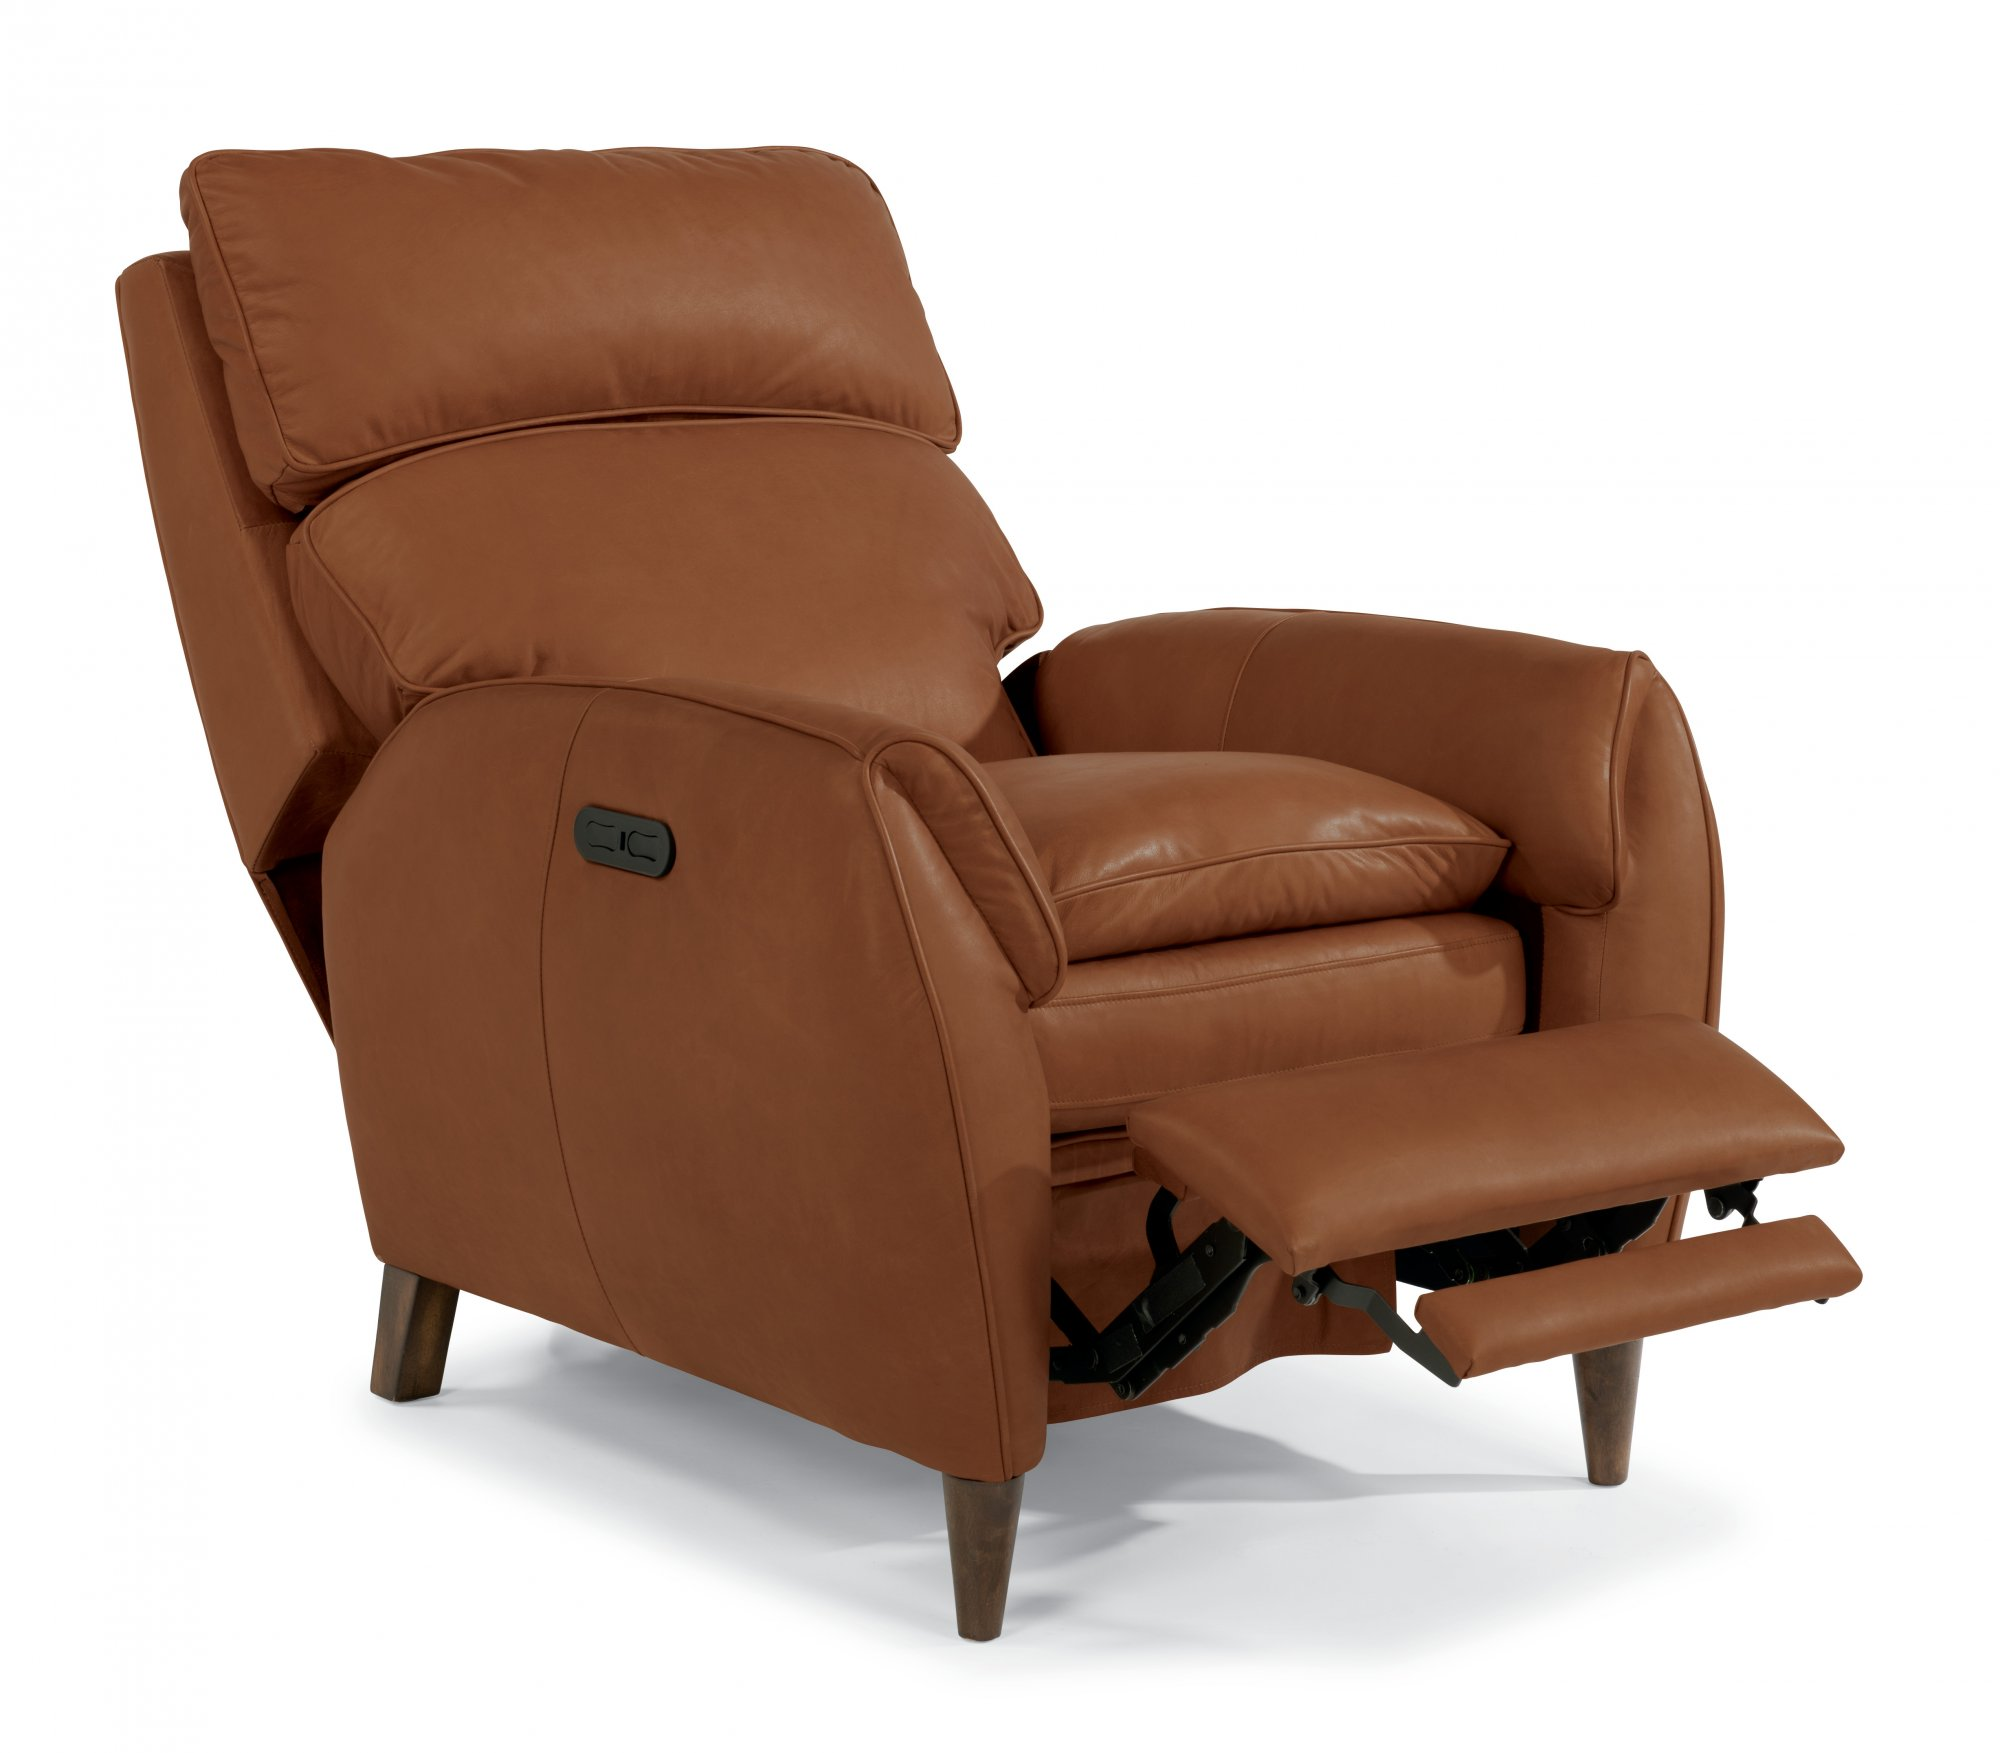 Reclining Chairs Sofas Reclining Furniture from Flexsteel